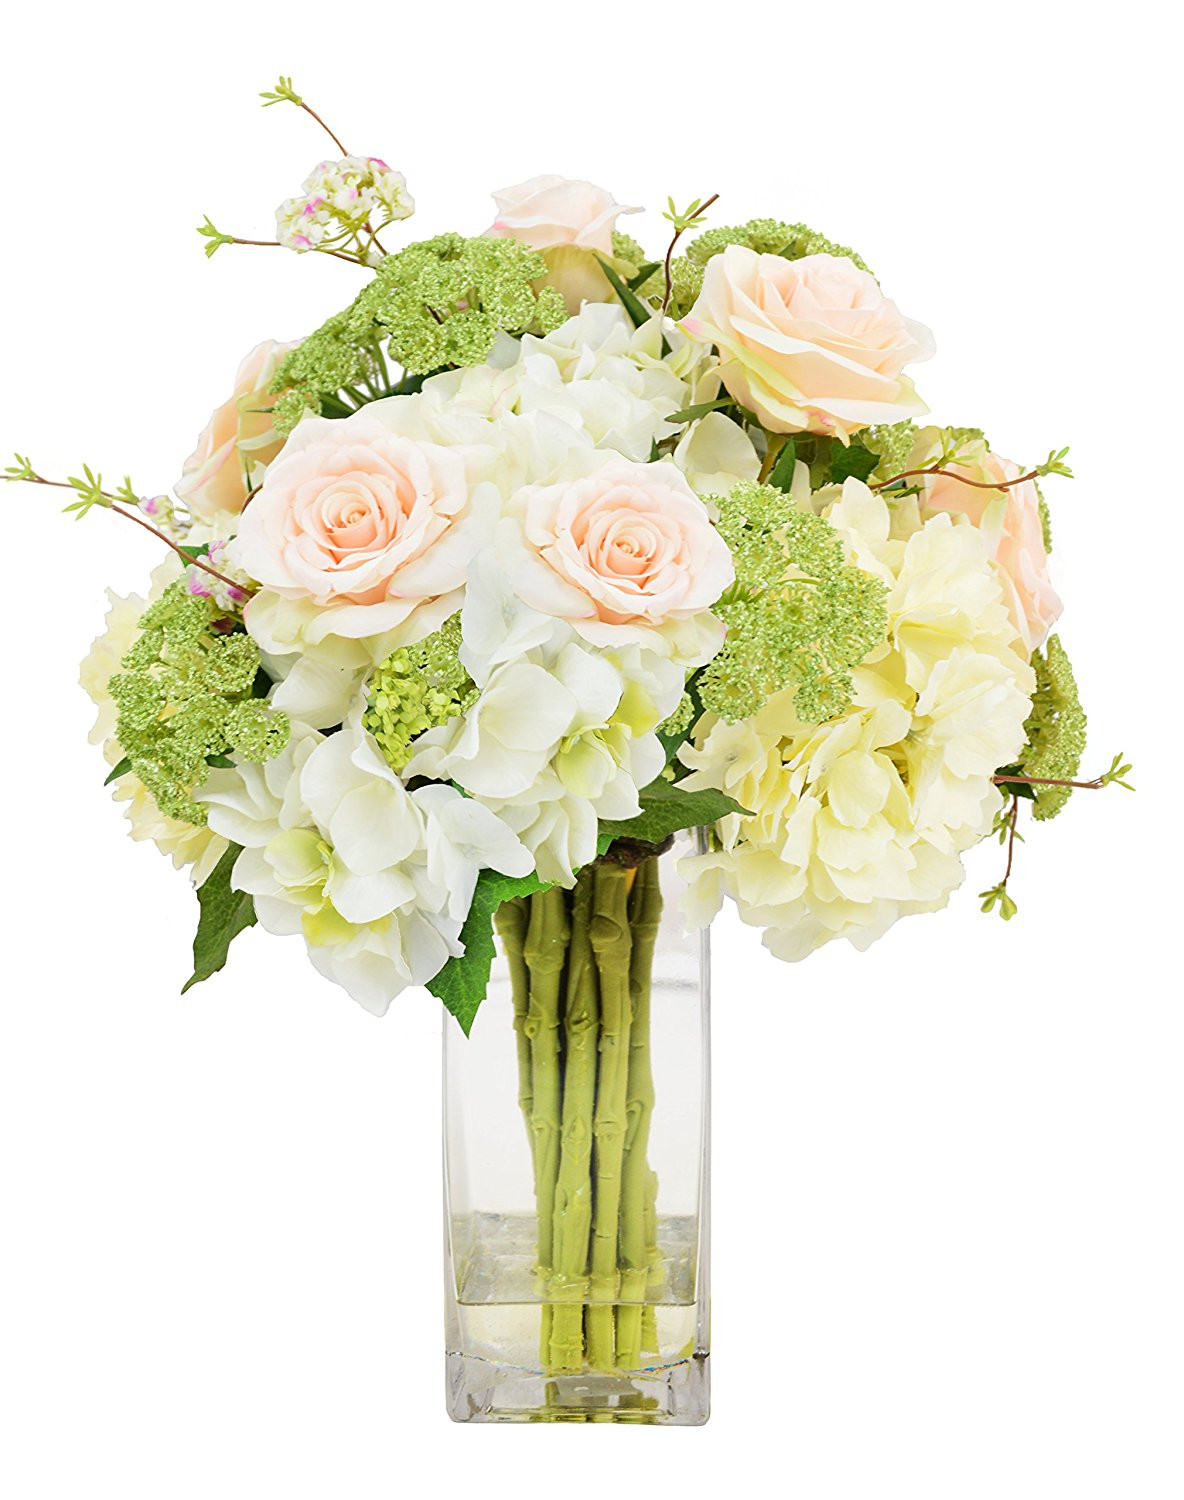 tall square vases cheap of cheap tall square water glass cups find tall square water glass for get quotations a· creative displays cream hydrangeas green queen anns lace soft peach roses green budding